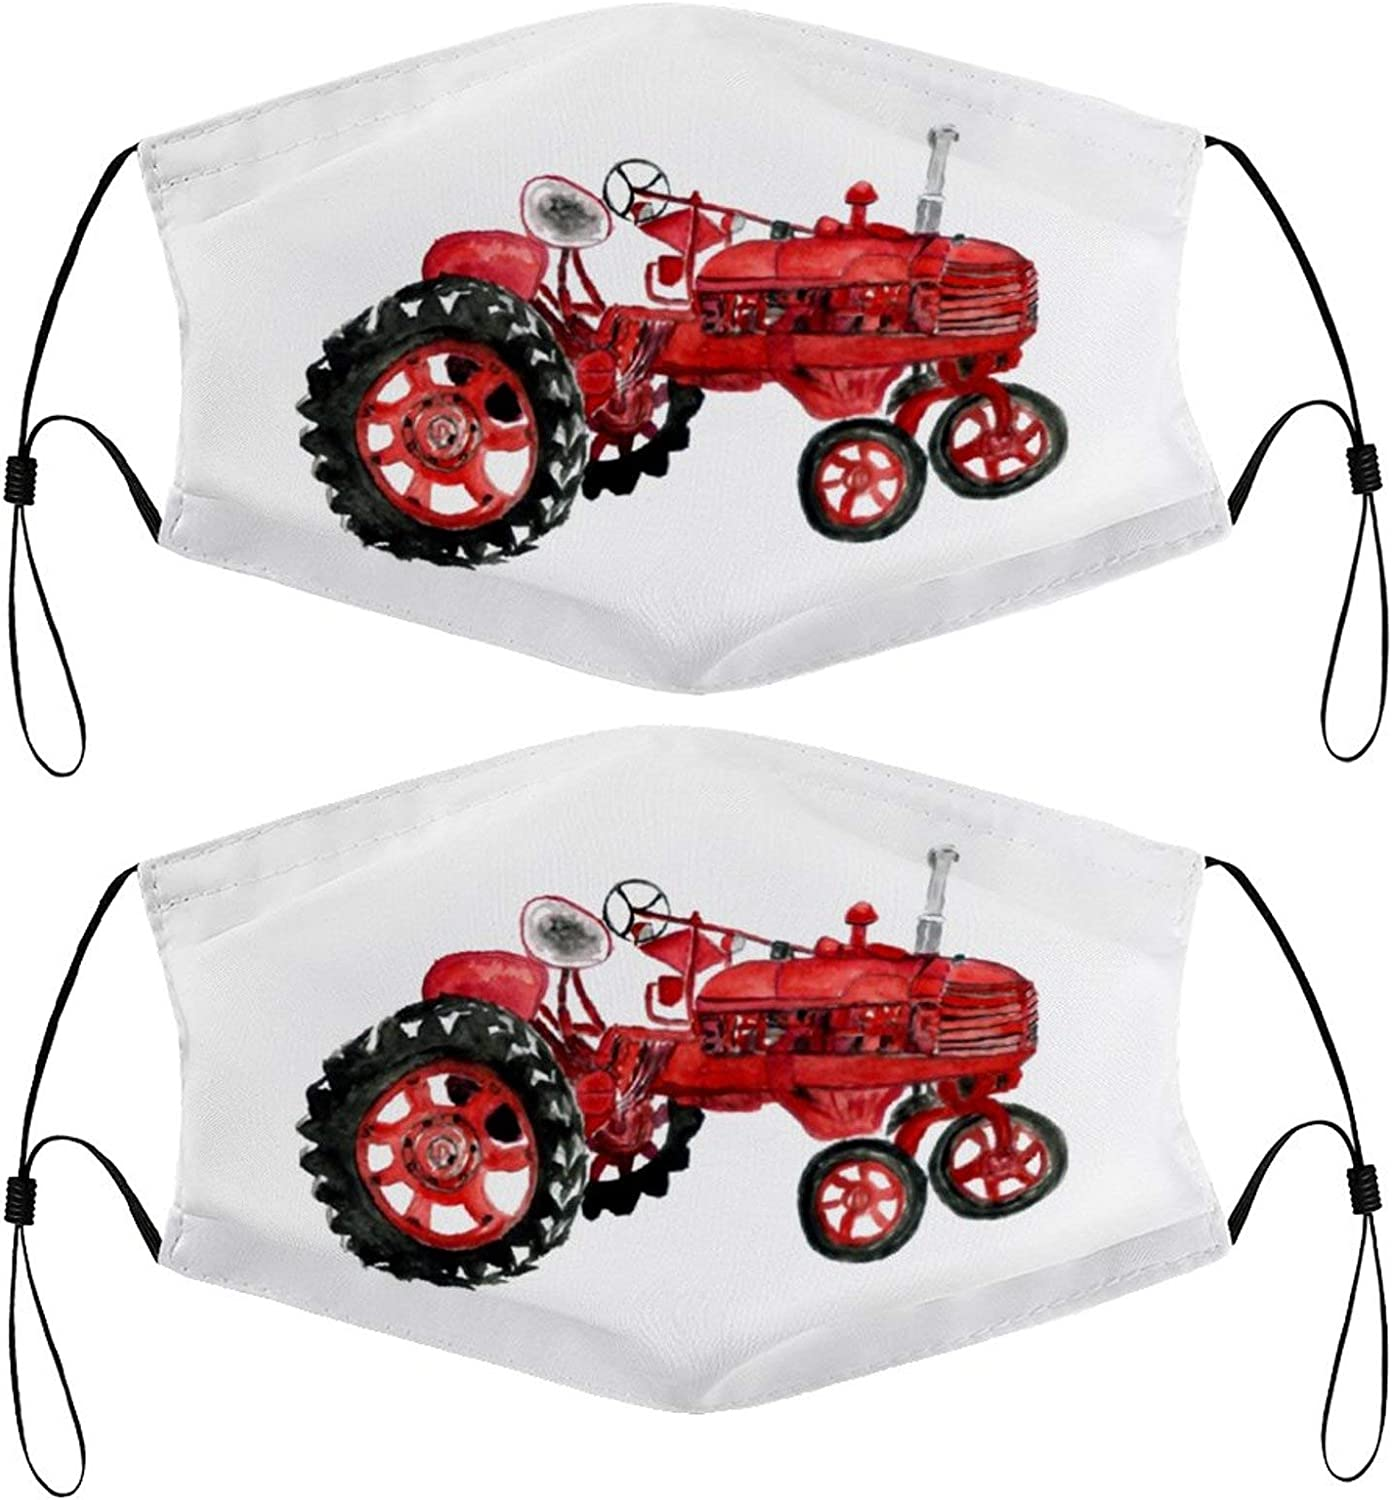 Old Tractor Classic Kids Face Masks Set of 2 with 4 Filters Washable Reusable Breathable Black Cloth Bandanas Scarf for Unisex Boys Girls